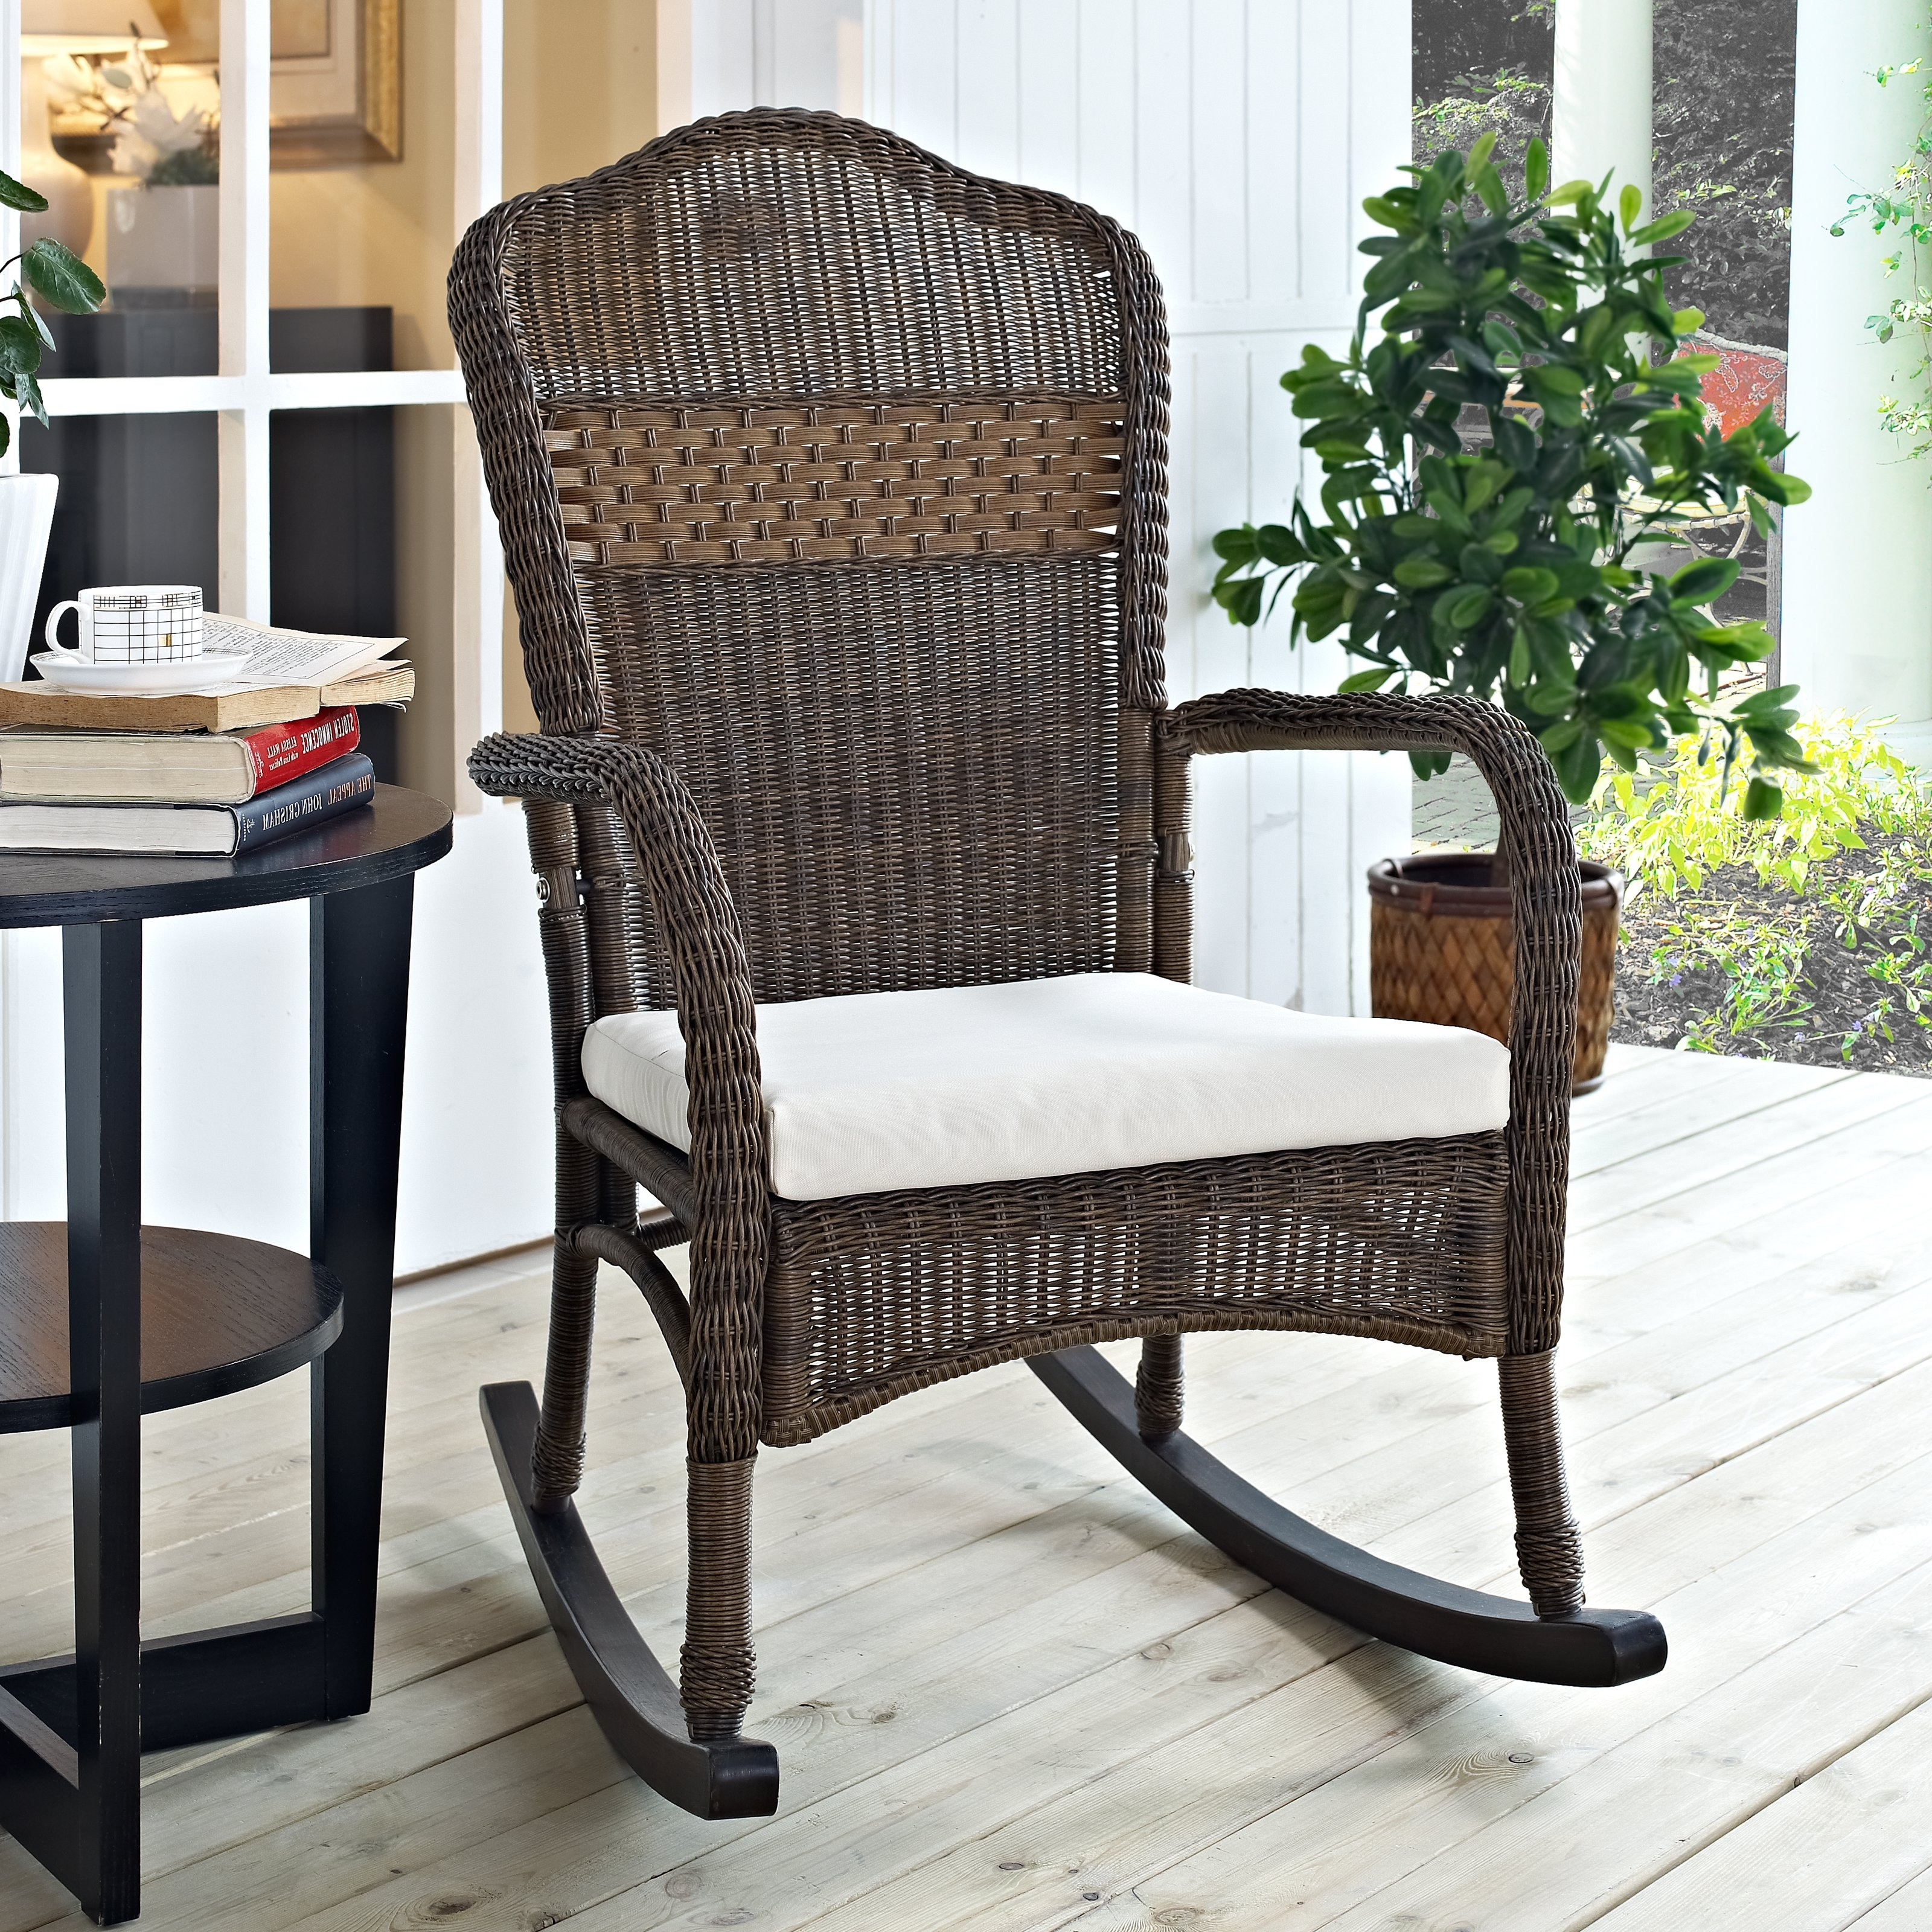 Favorite Rocking Chair Cushions For Outdoor In Outdoor Wicker Rocking Chair Cushions – Outdoor Designs (View 5 of 15)